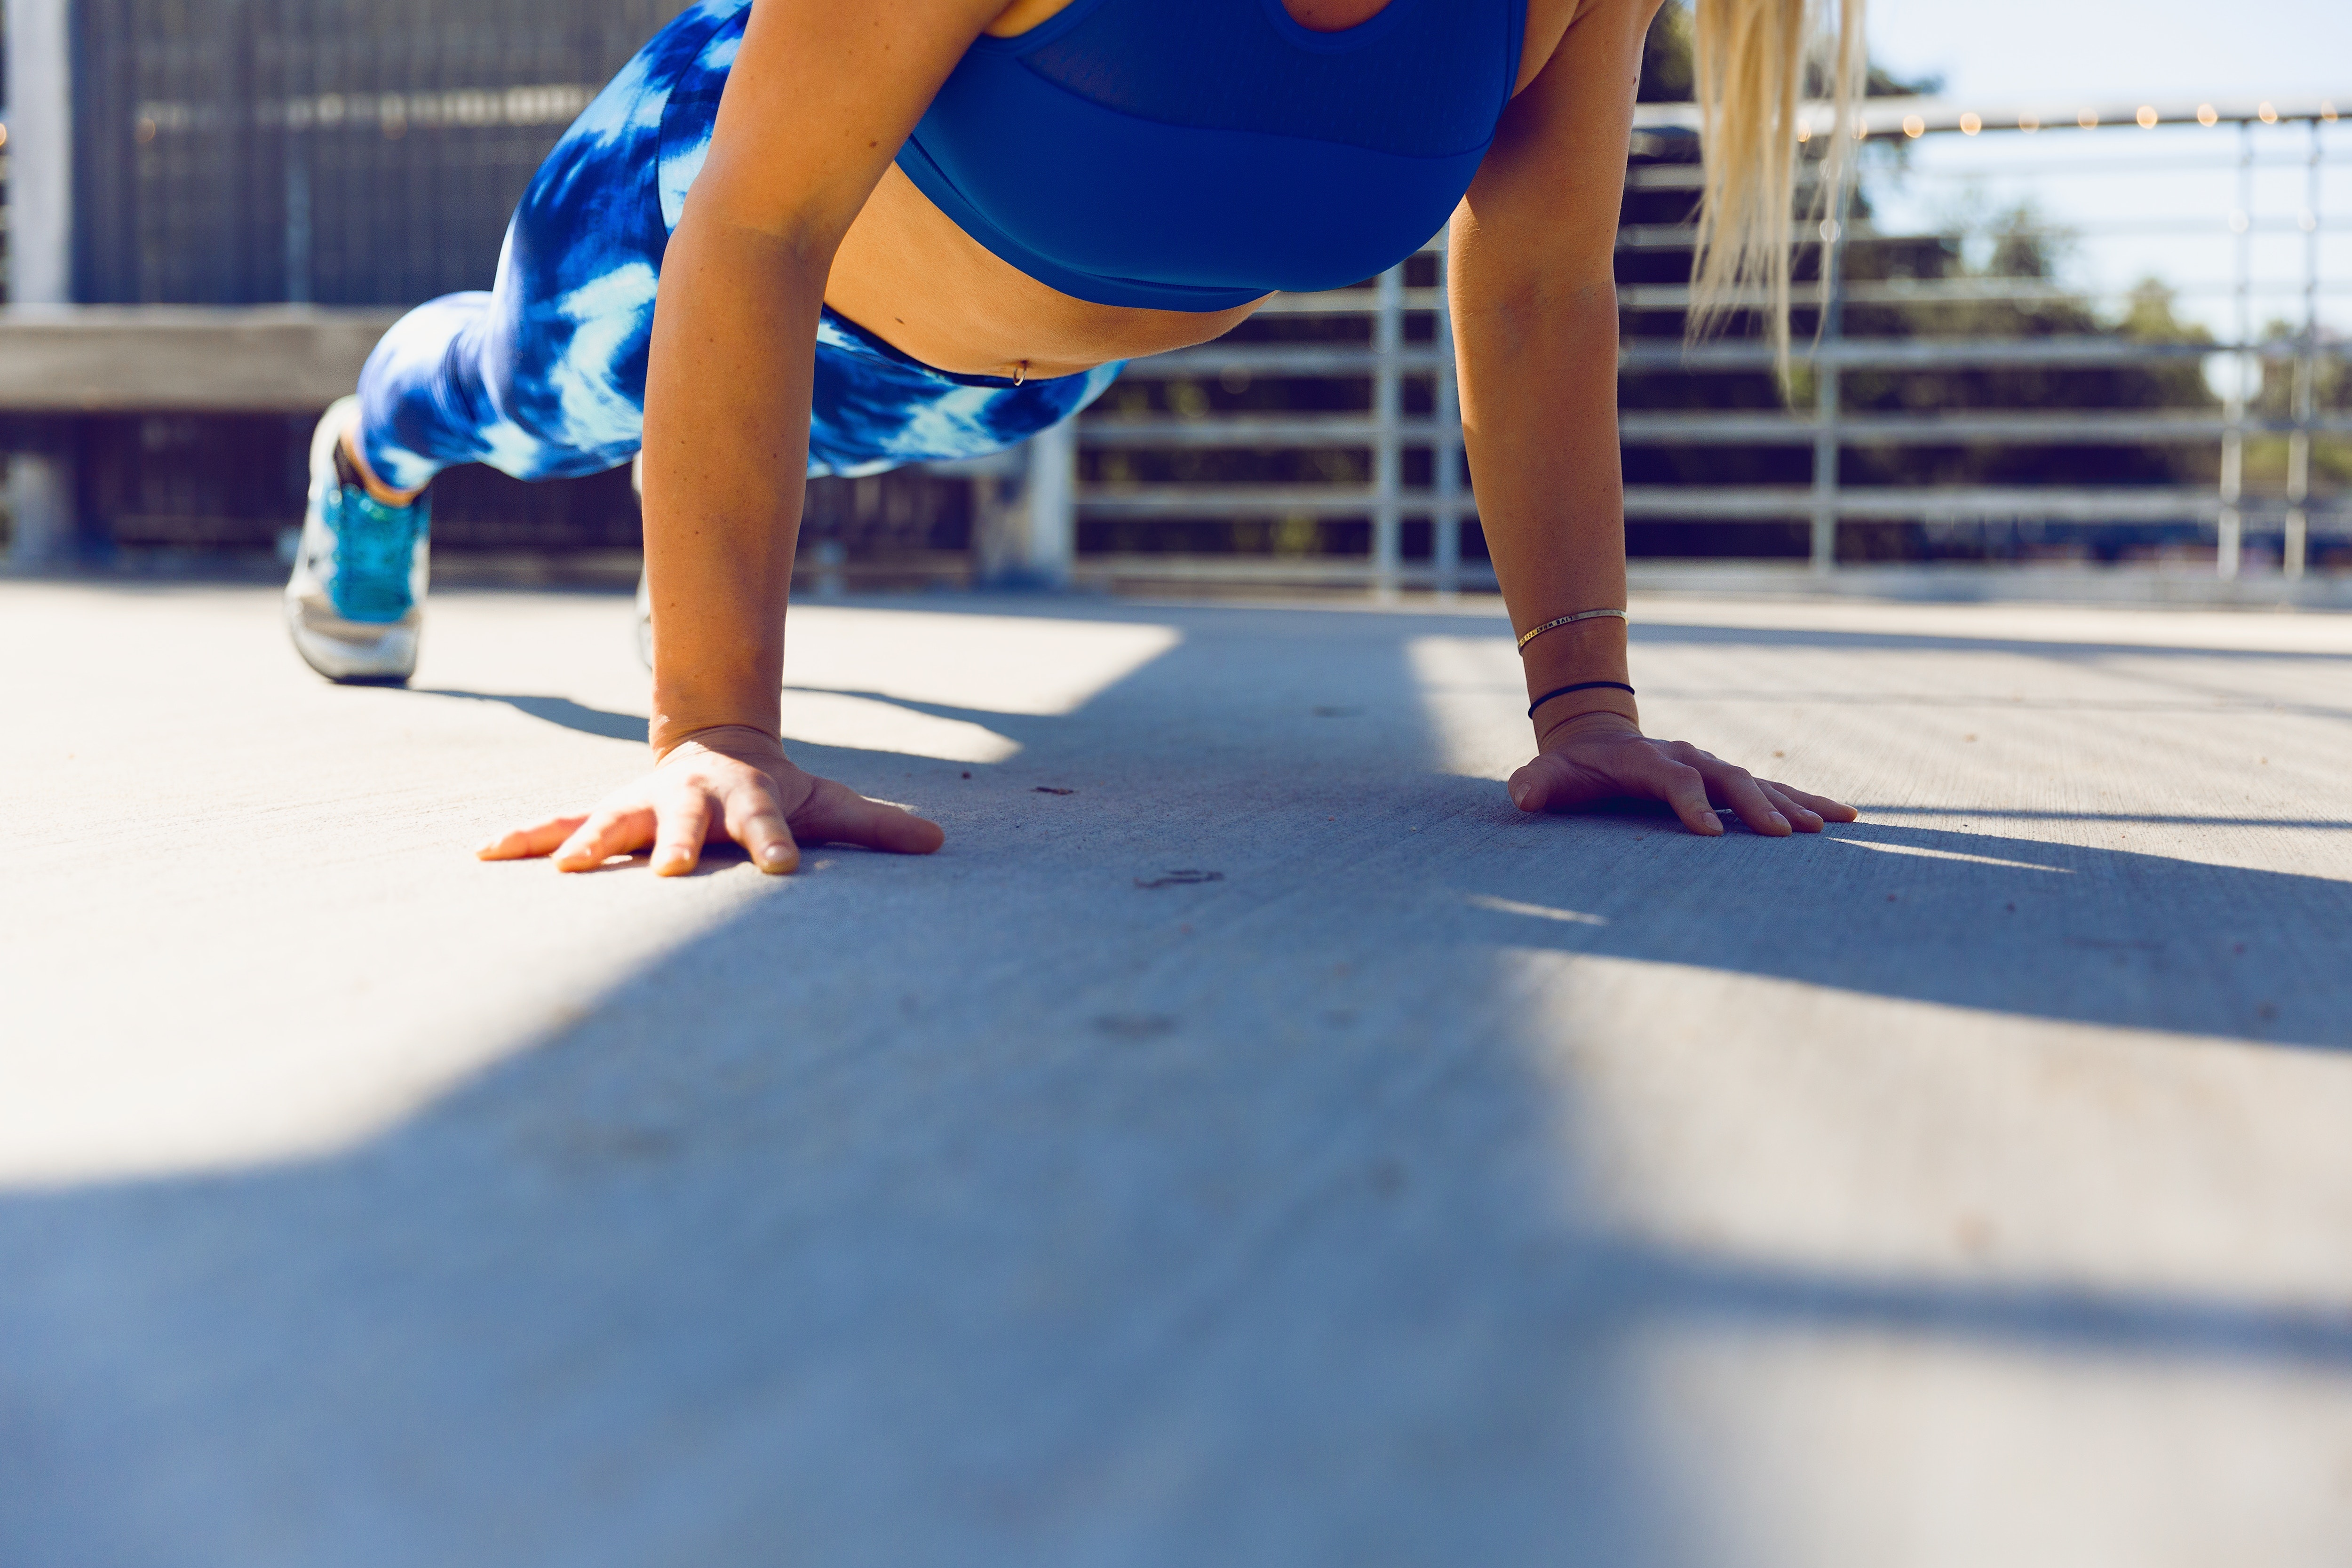 Report: 80% of Americans are insufficiently active